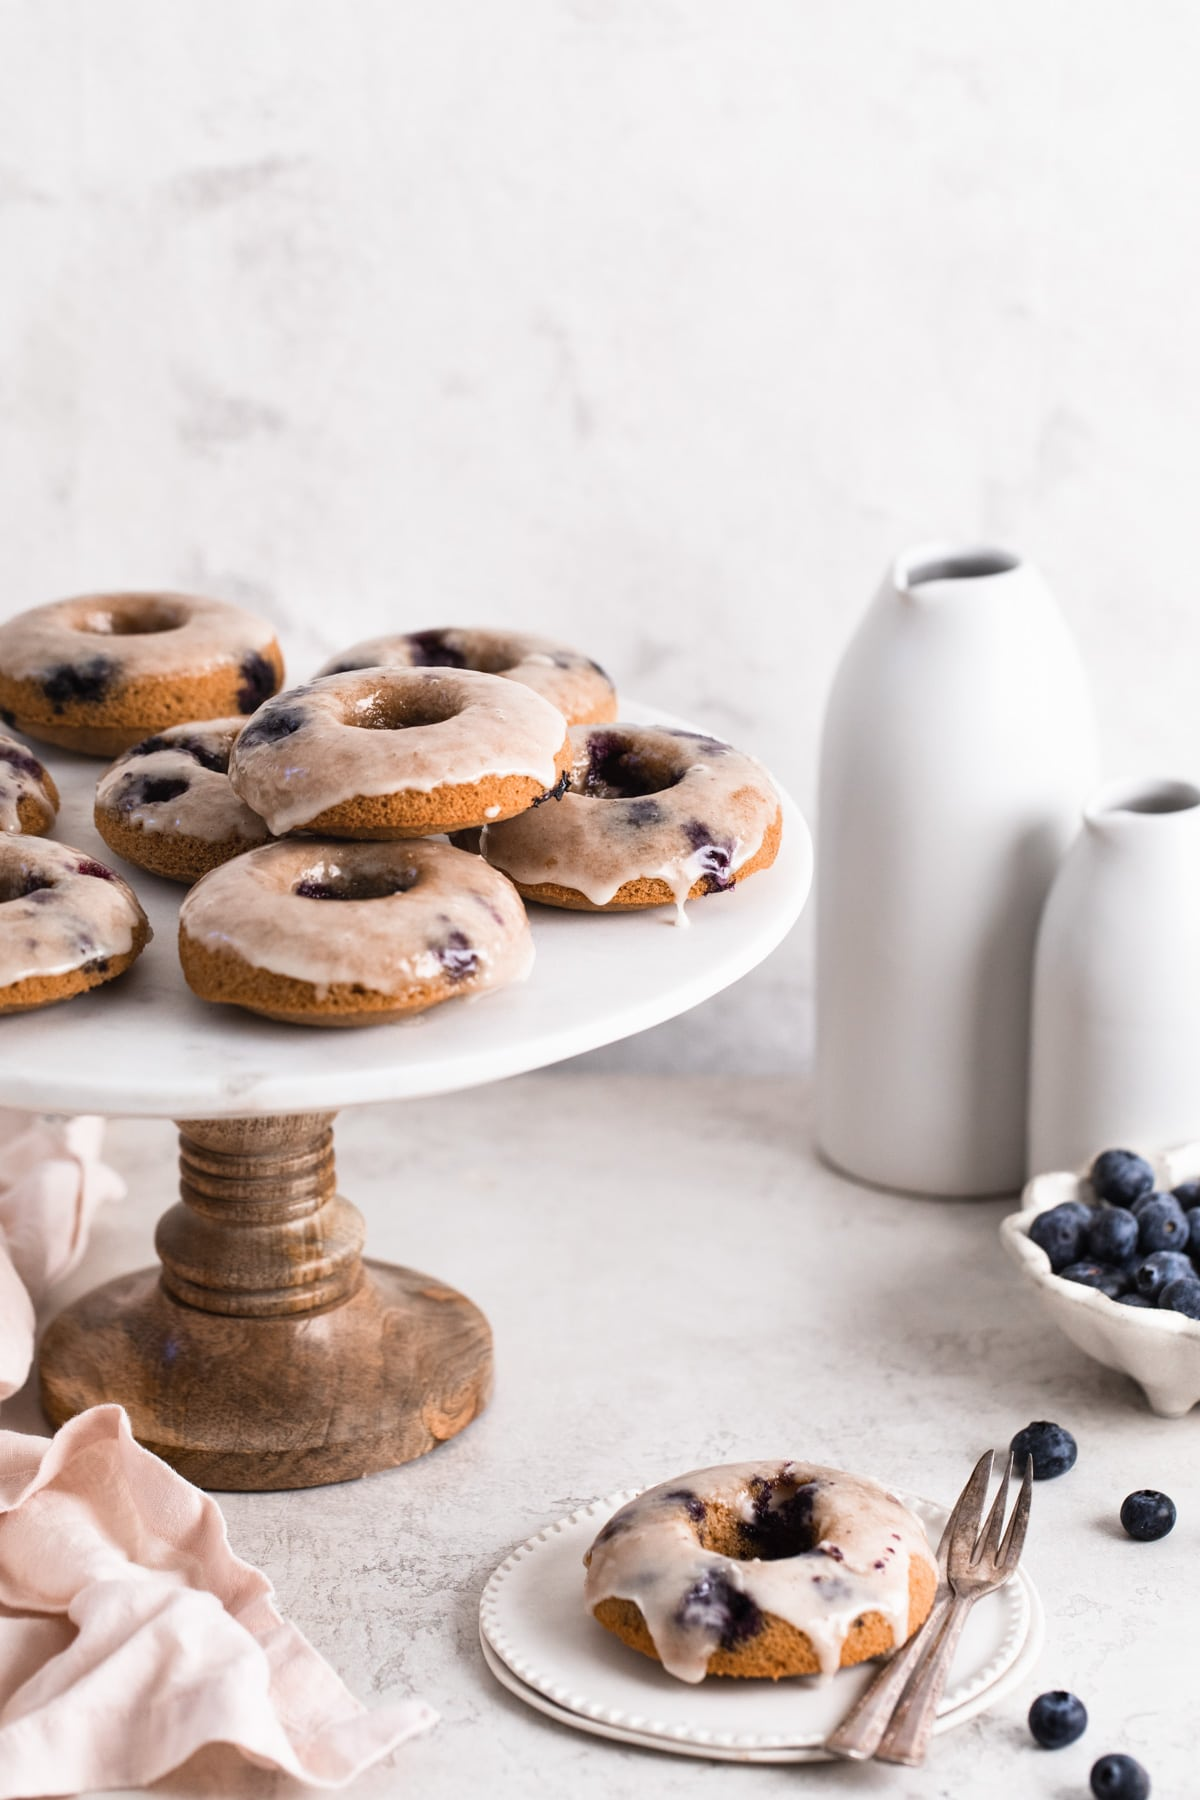 healthy baked blueberry donuts with lemon glaze on cake stand